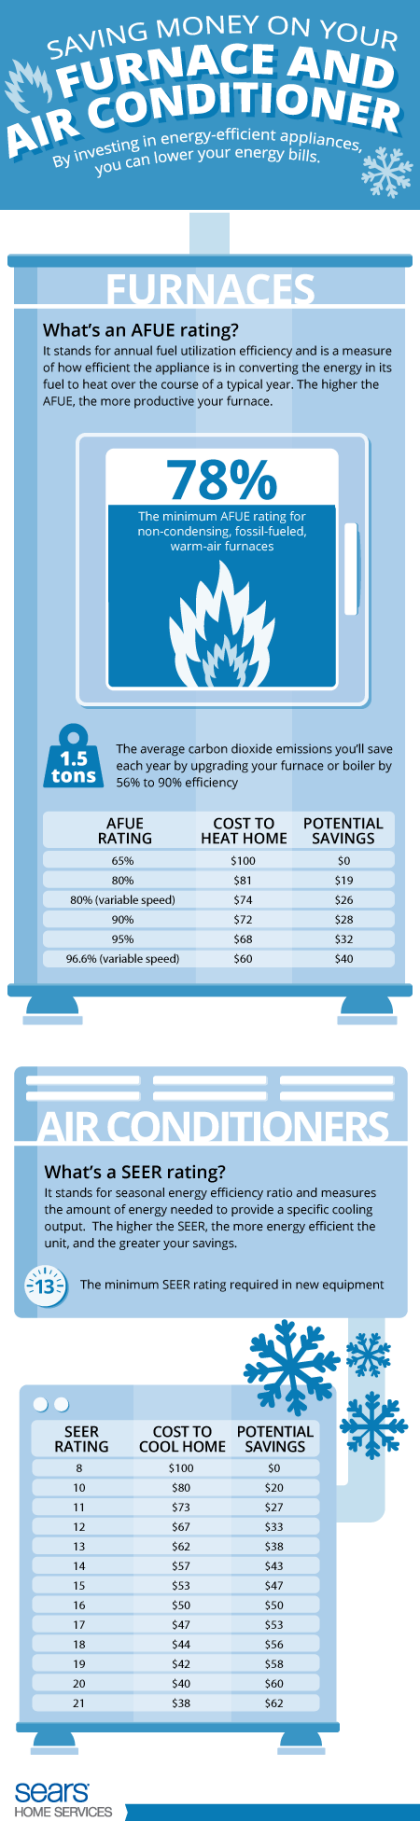 energy savings from furnaces and air conditioners